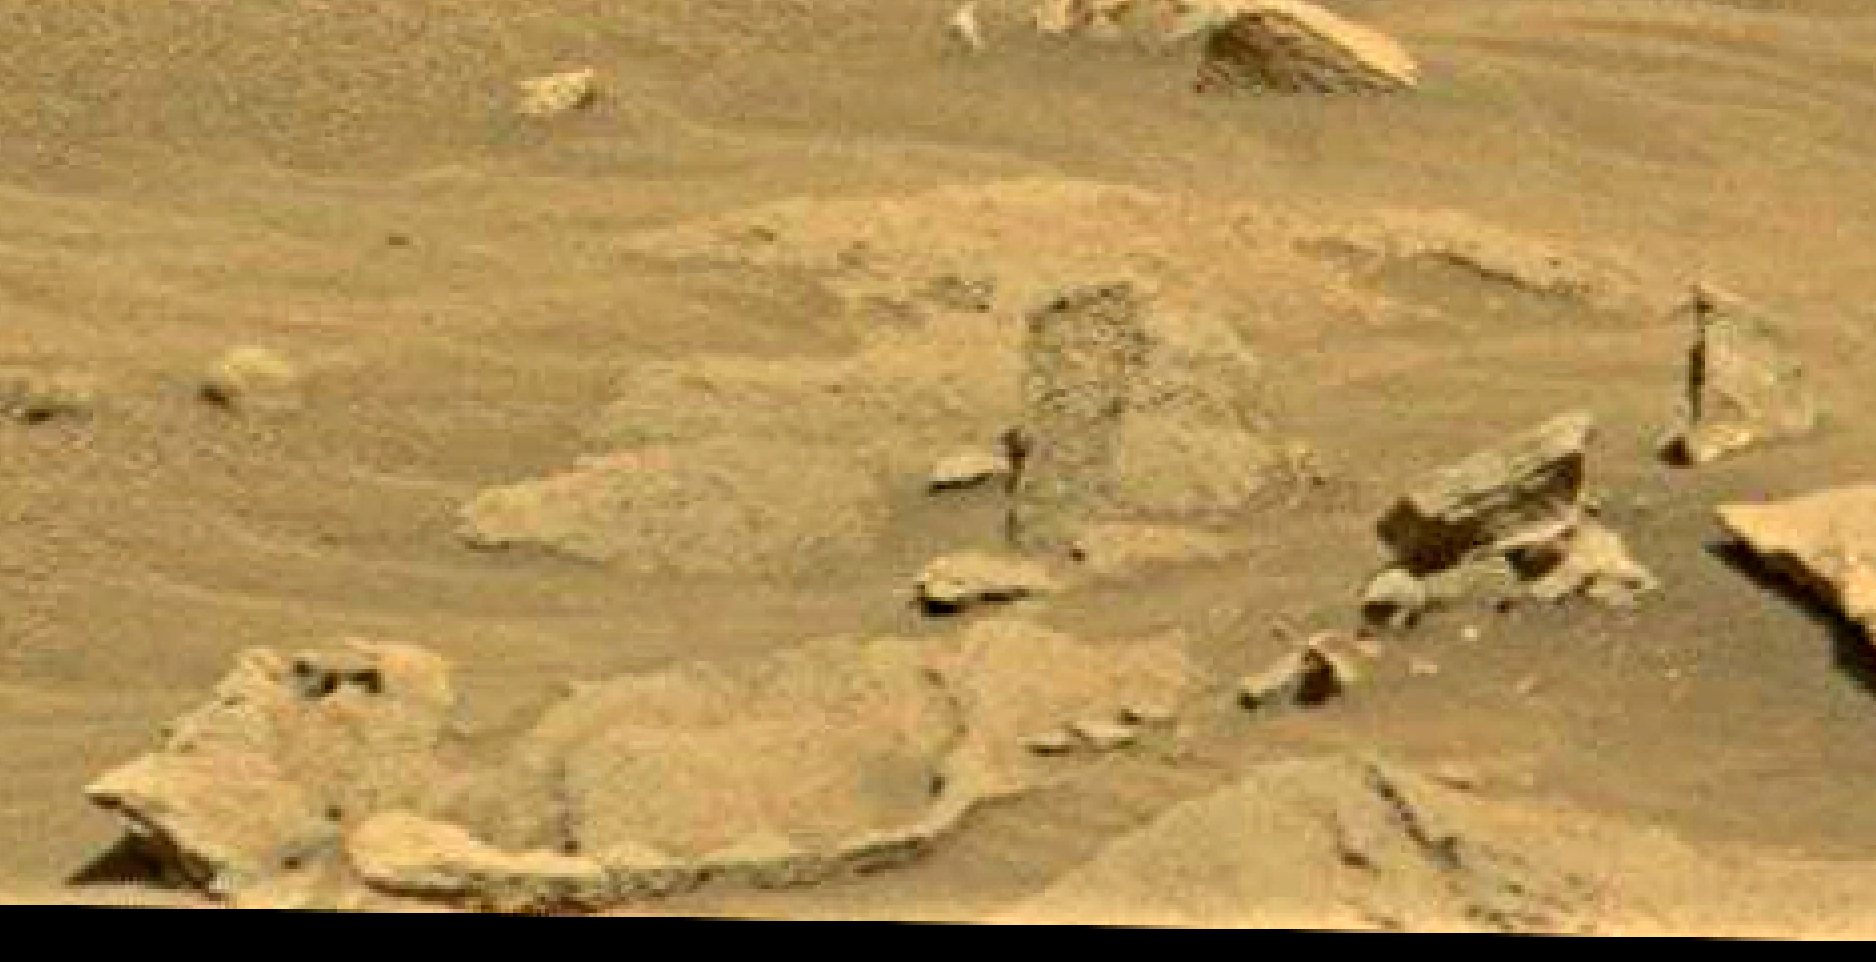 mars sol 1353 anomaly-artifacts 42 was life on mars